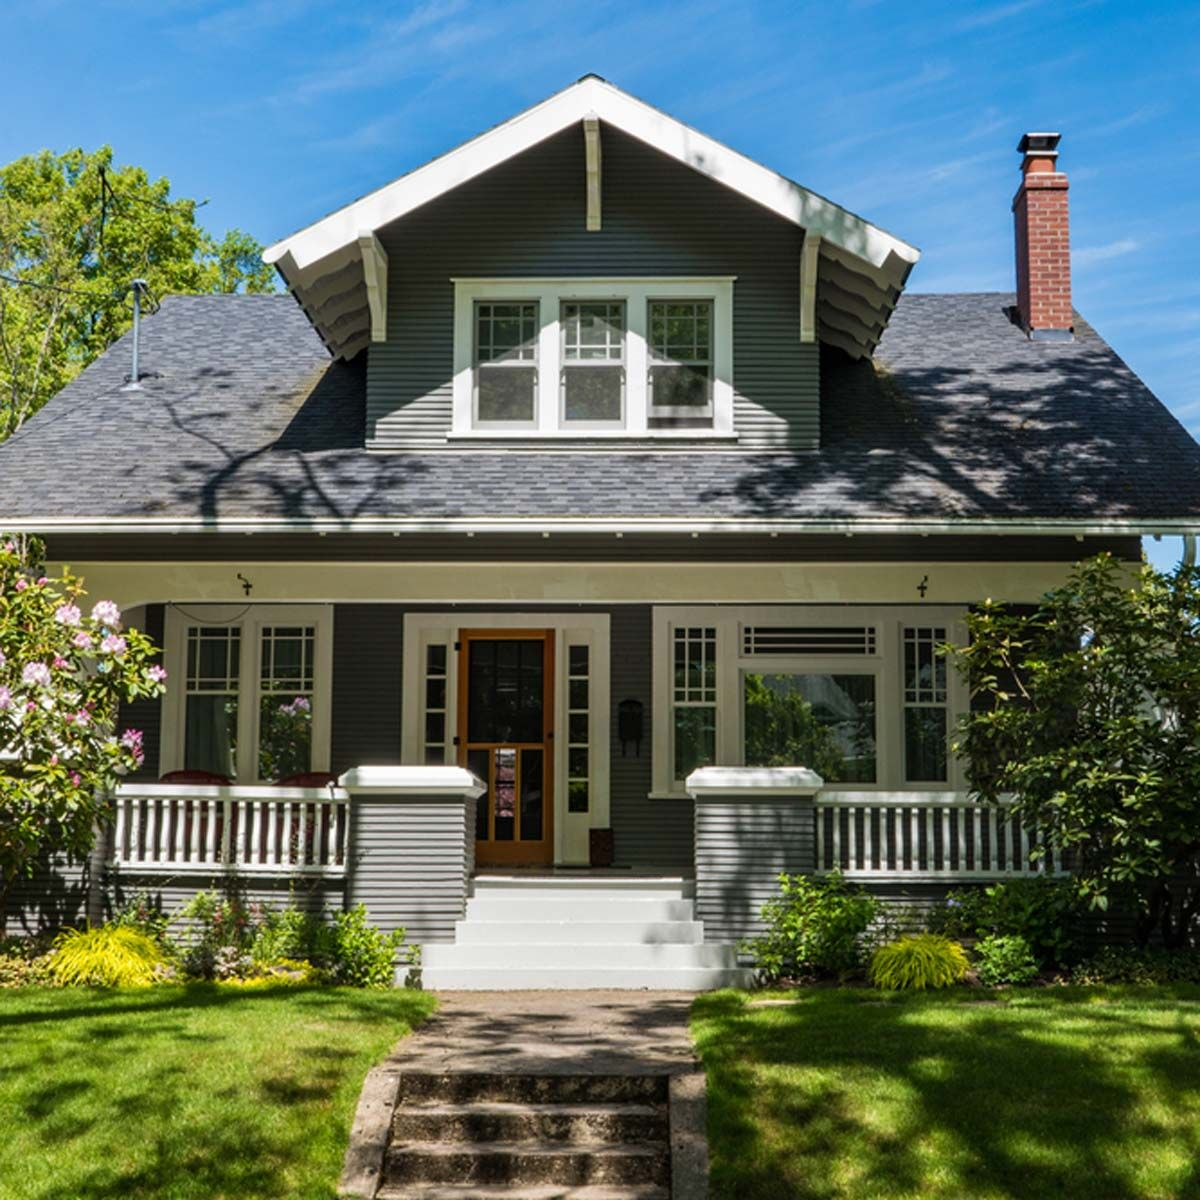 The Top 6 Most Popular Architectural Home Styles In The U S With Images Craftsman Bungalows House Styles House Architecture Styles